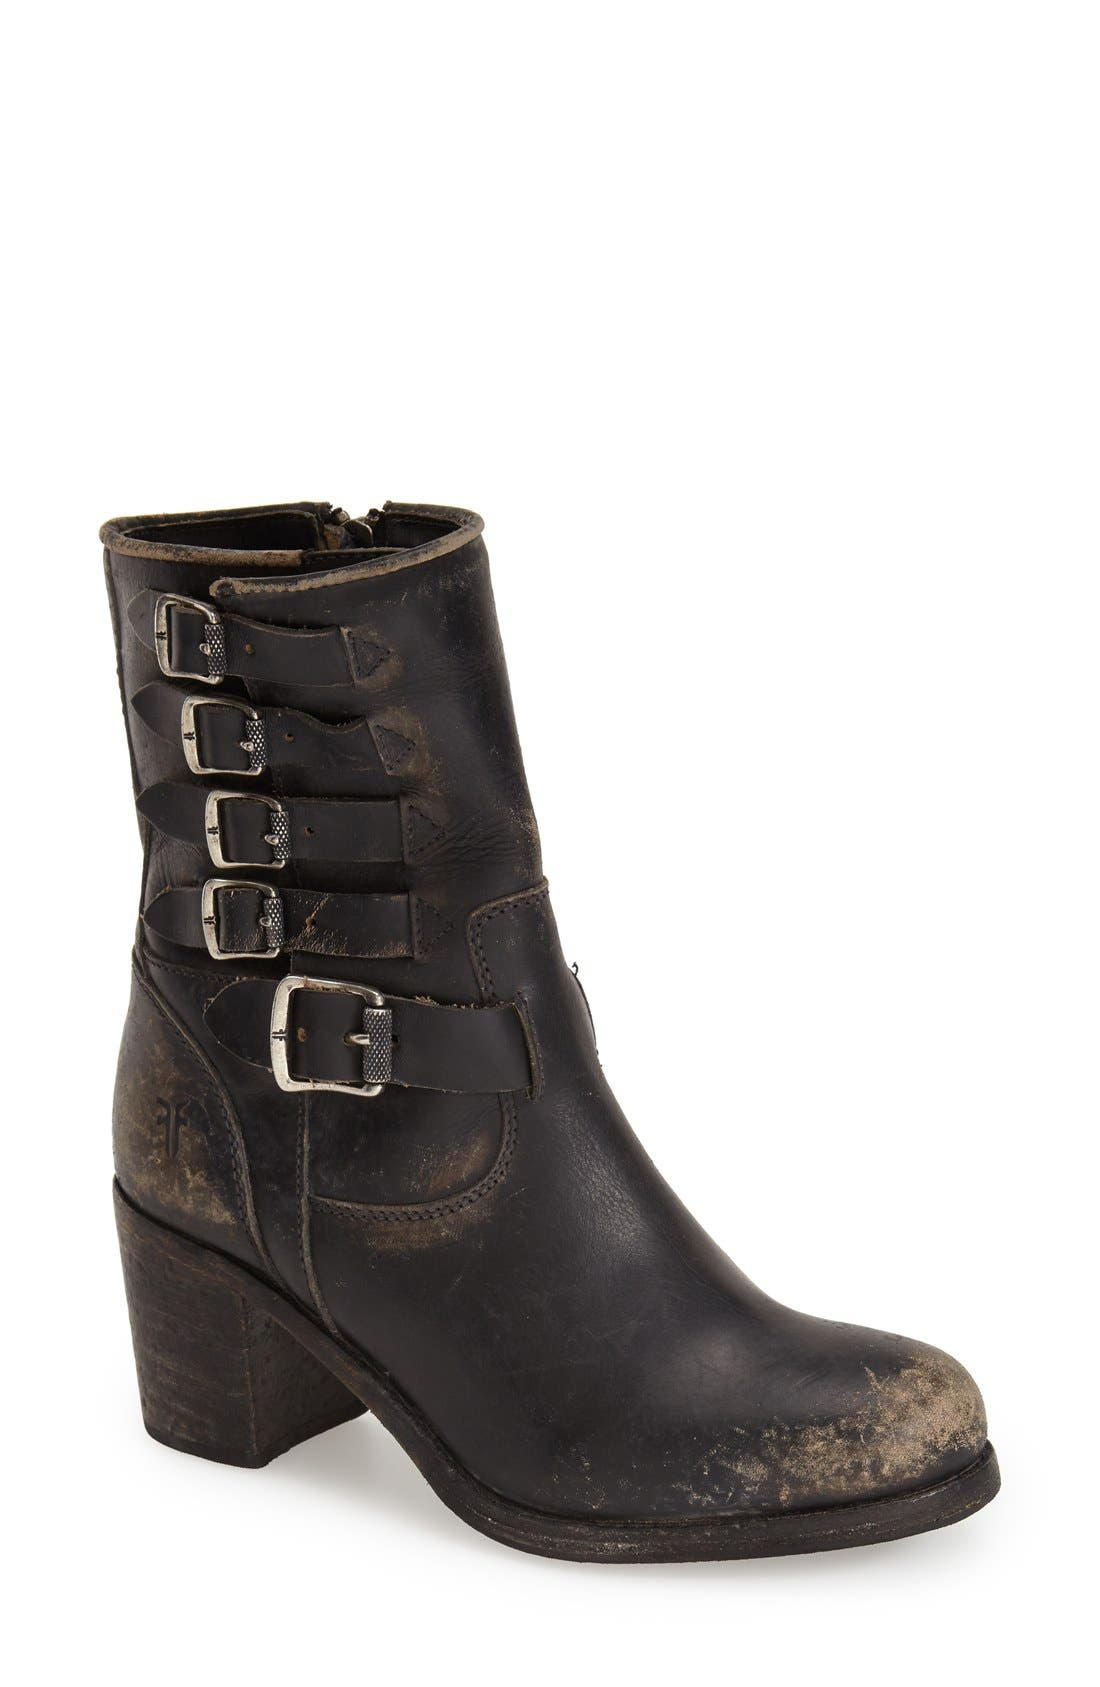 Main Image - Frye 'Kelly' Belted Short Boot (Women)